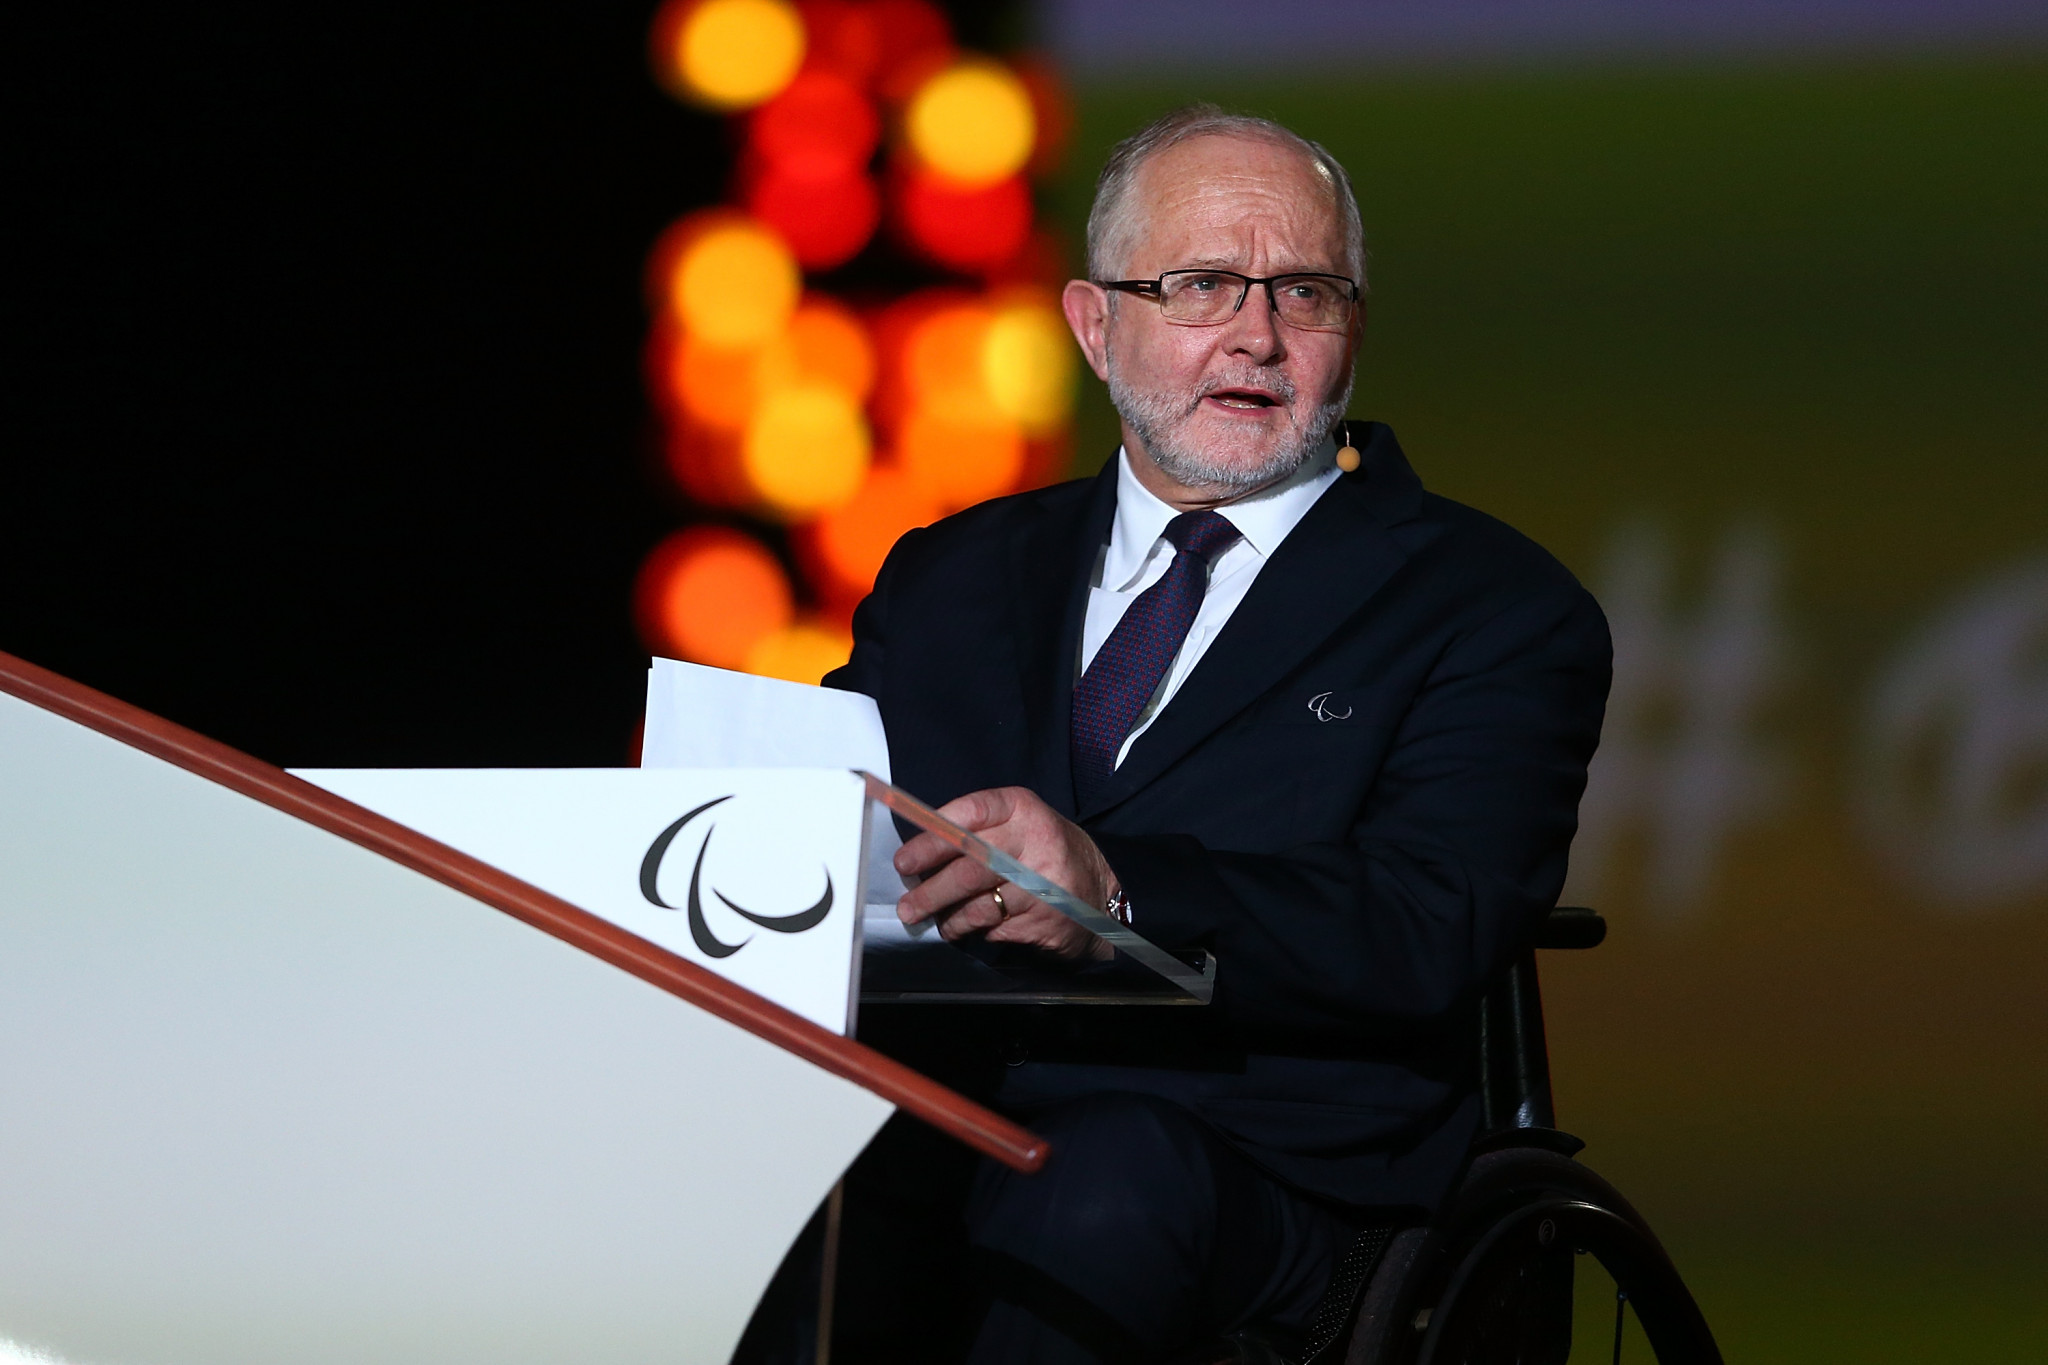 The successor to IPC President Sir Philip Craven, who has led the organisation since 2001, is due to be elected during the General Assembly ©Getty Images